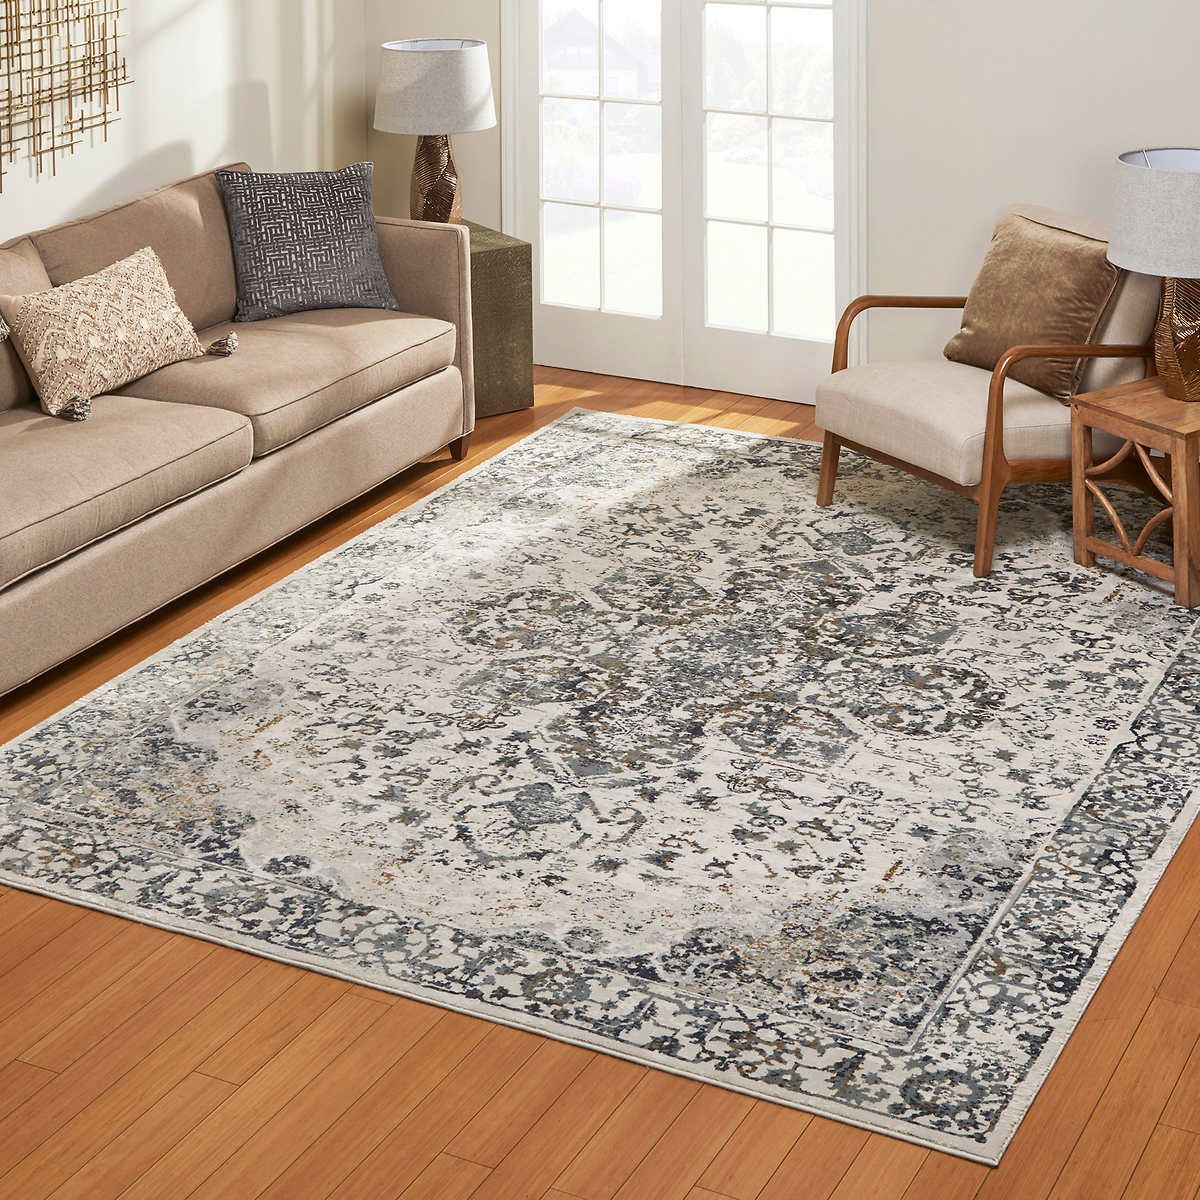 Aurora Rug Collection Cecile Ivory Gray Floor Rugs Living Room Living Room Wood Floor Rugs In Living Room